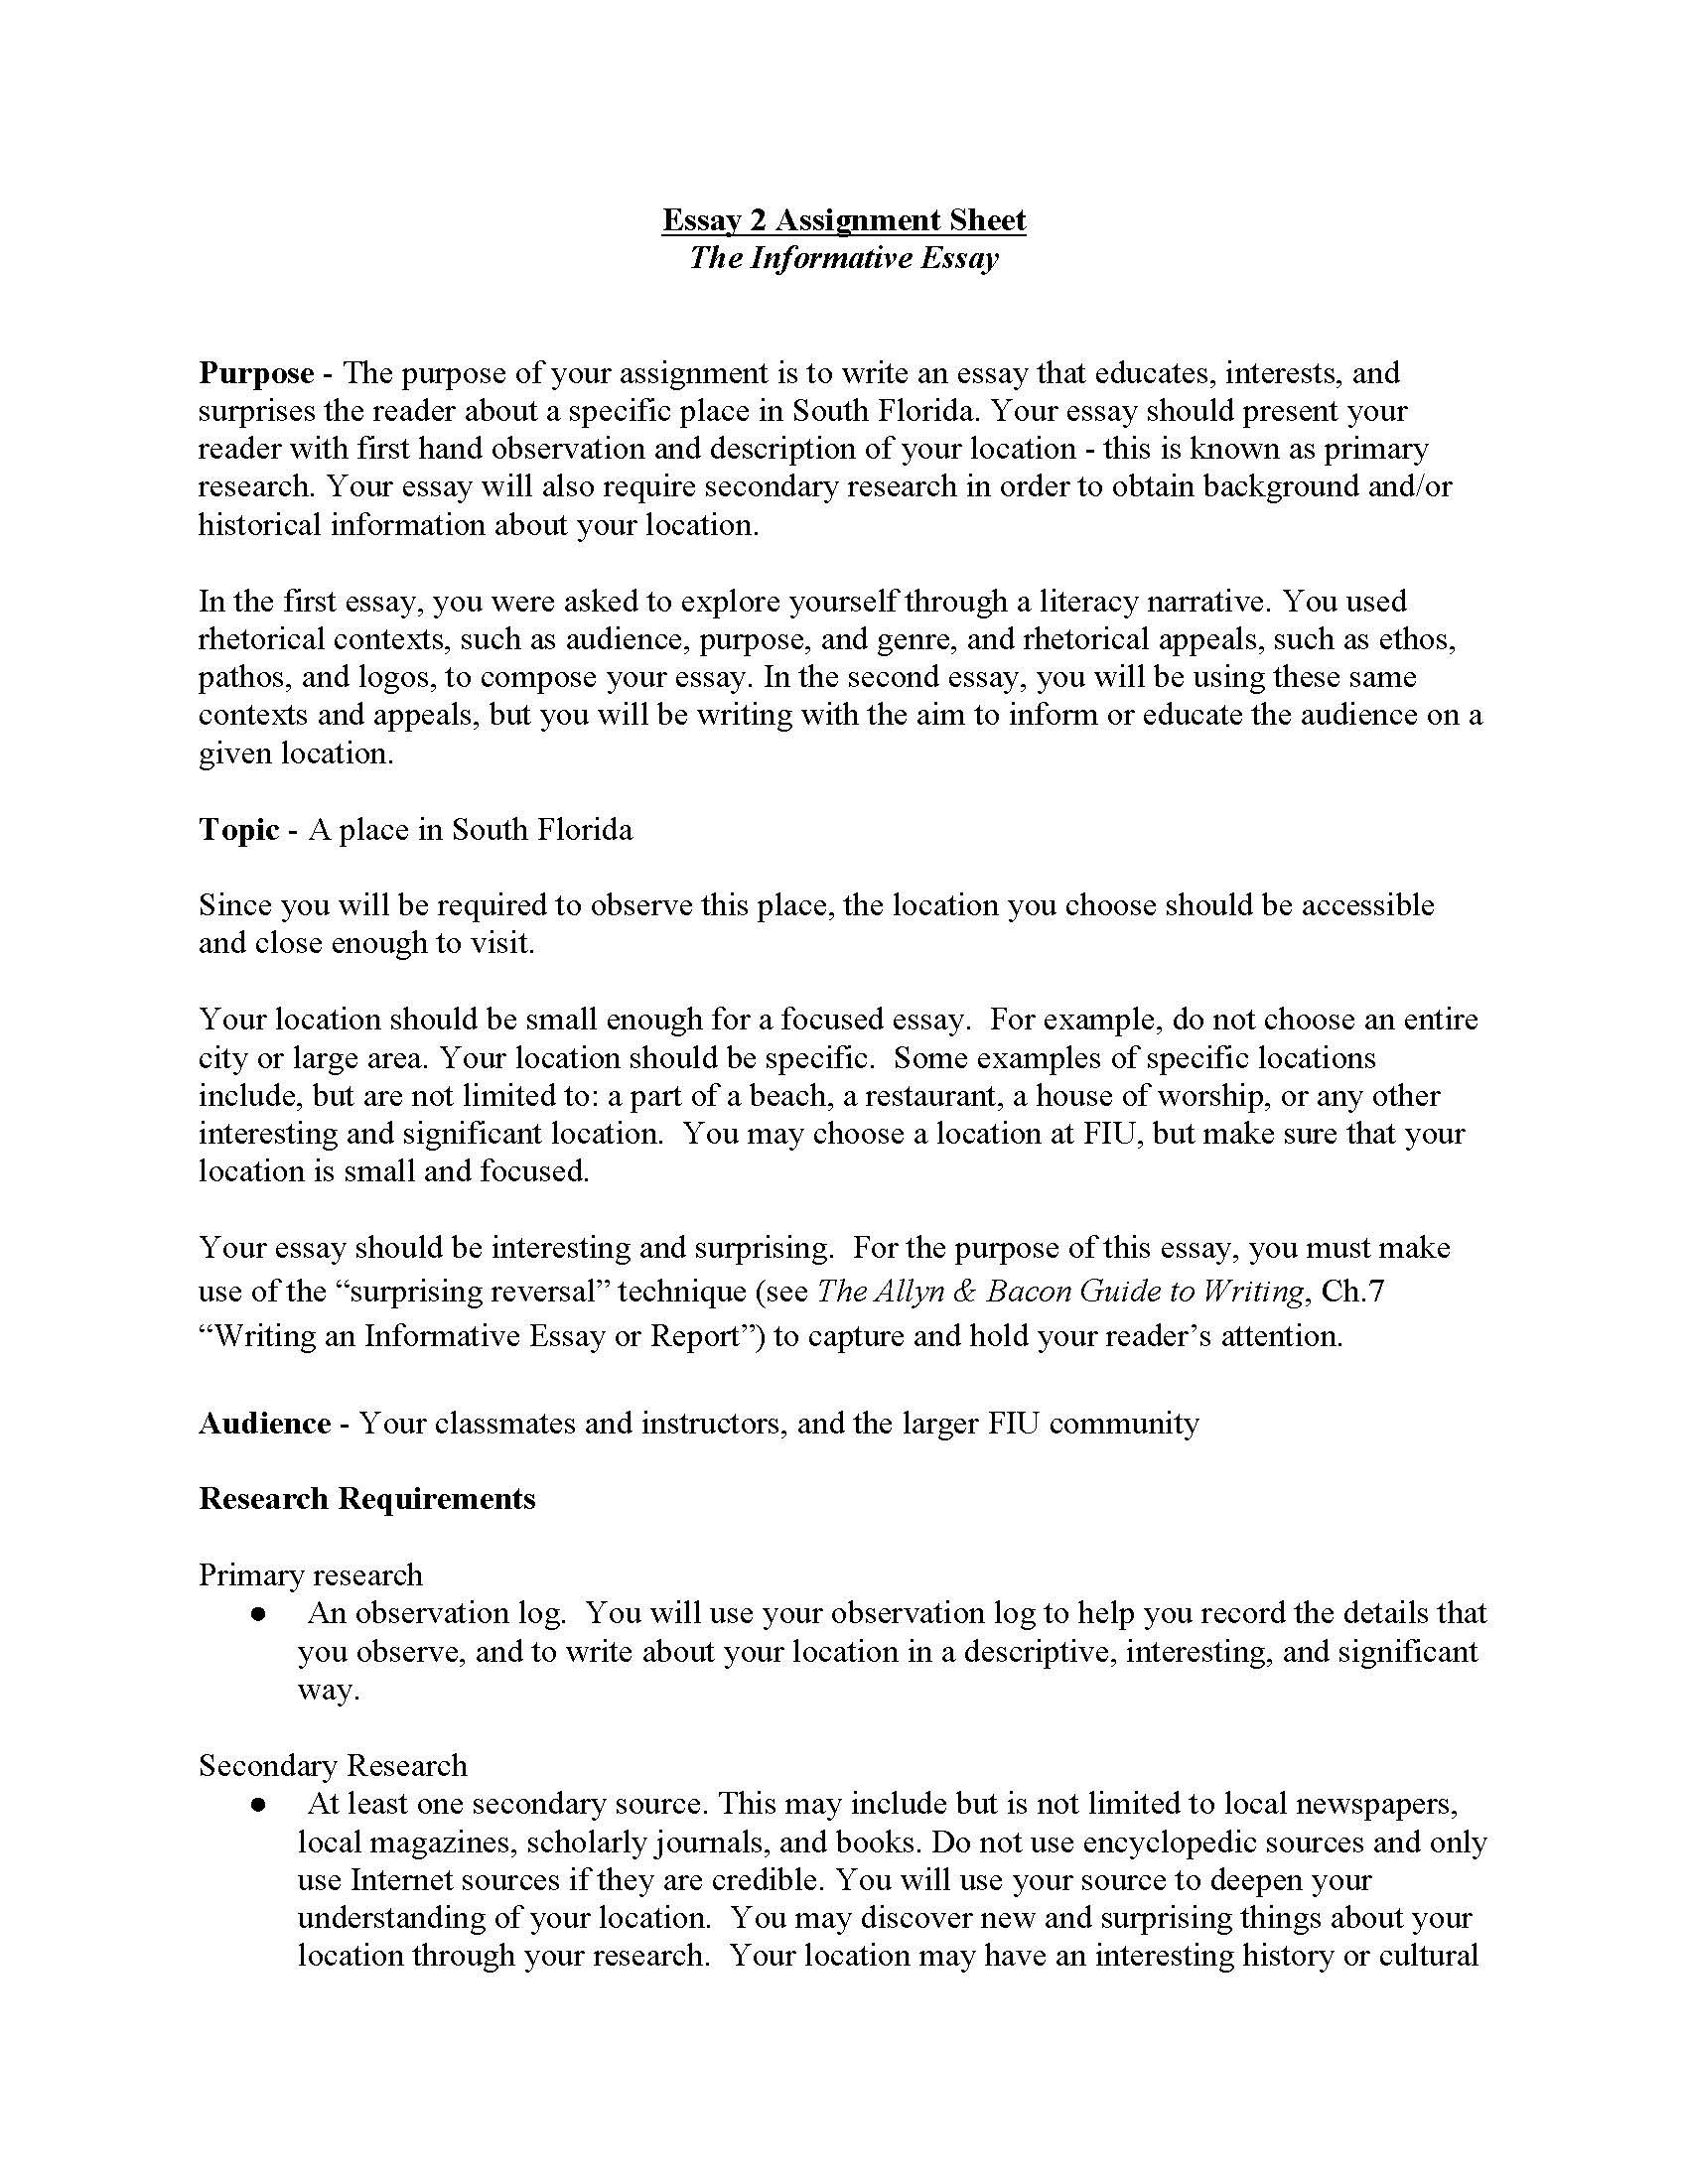 what is a informative essay what is an informative essay atsl ip what is an informative essay atsl my ip mephoto informative essay definition images socialsci coinformative text